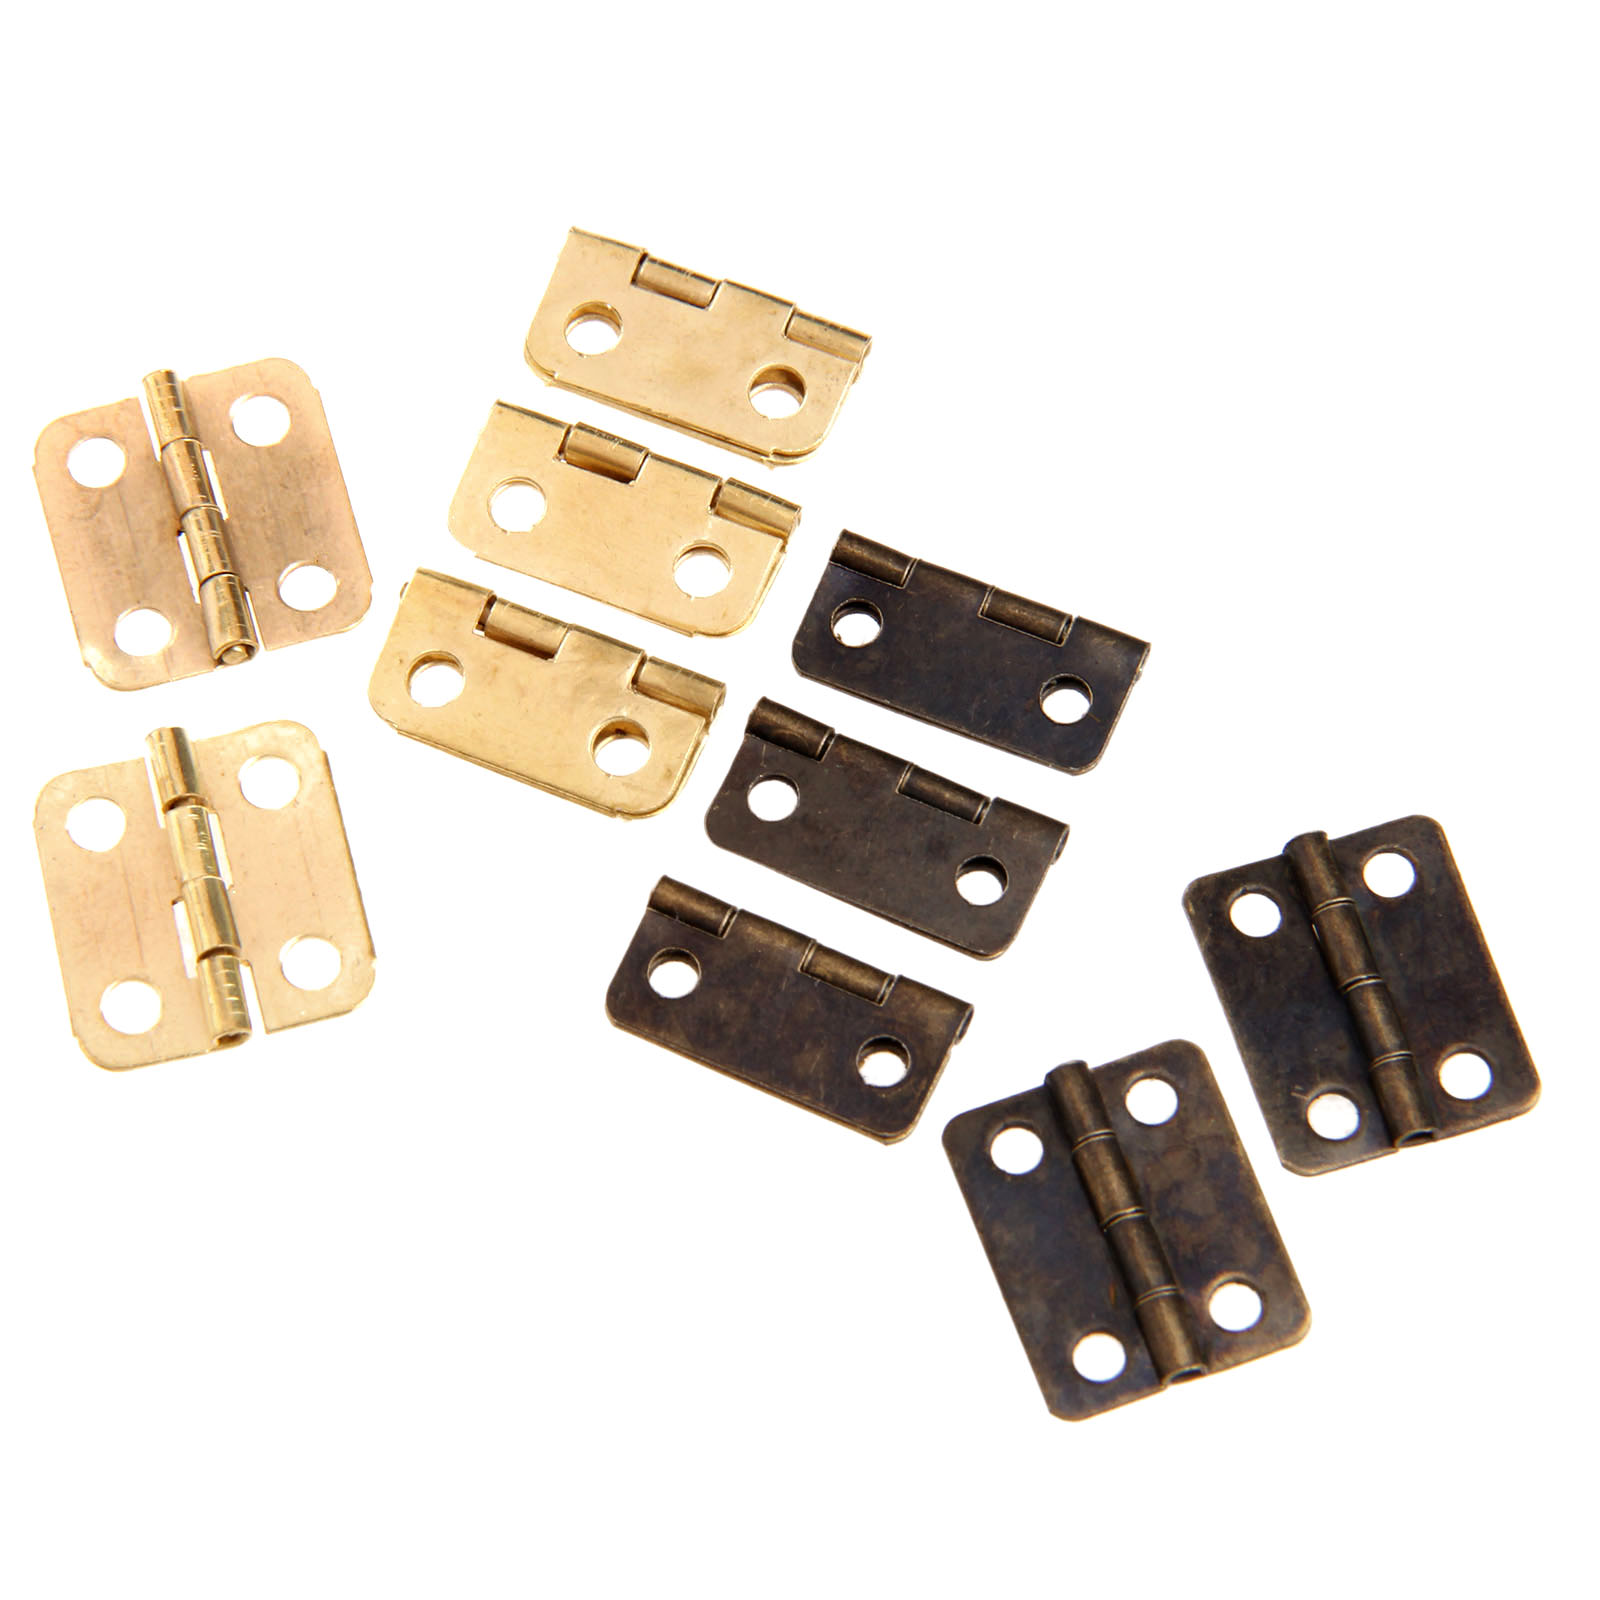 Купить с кэшбэком 50Pcs 16x13mm Antique Bronze/Gold Cabinet Hinges Furniture Accessories Jewelry Boxes Small Hinge Furniture Fittings For Cabinets